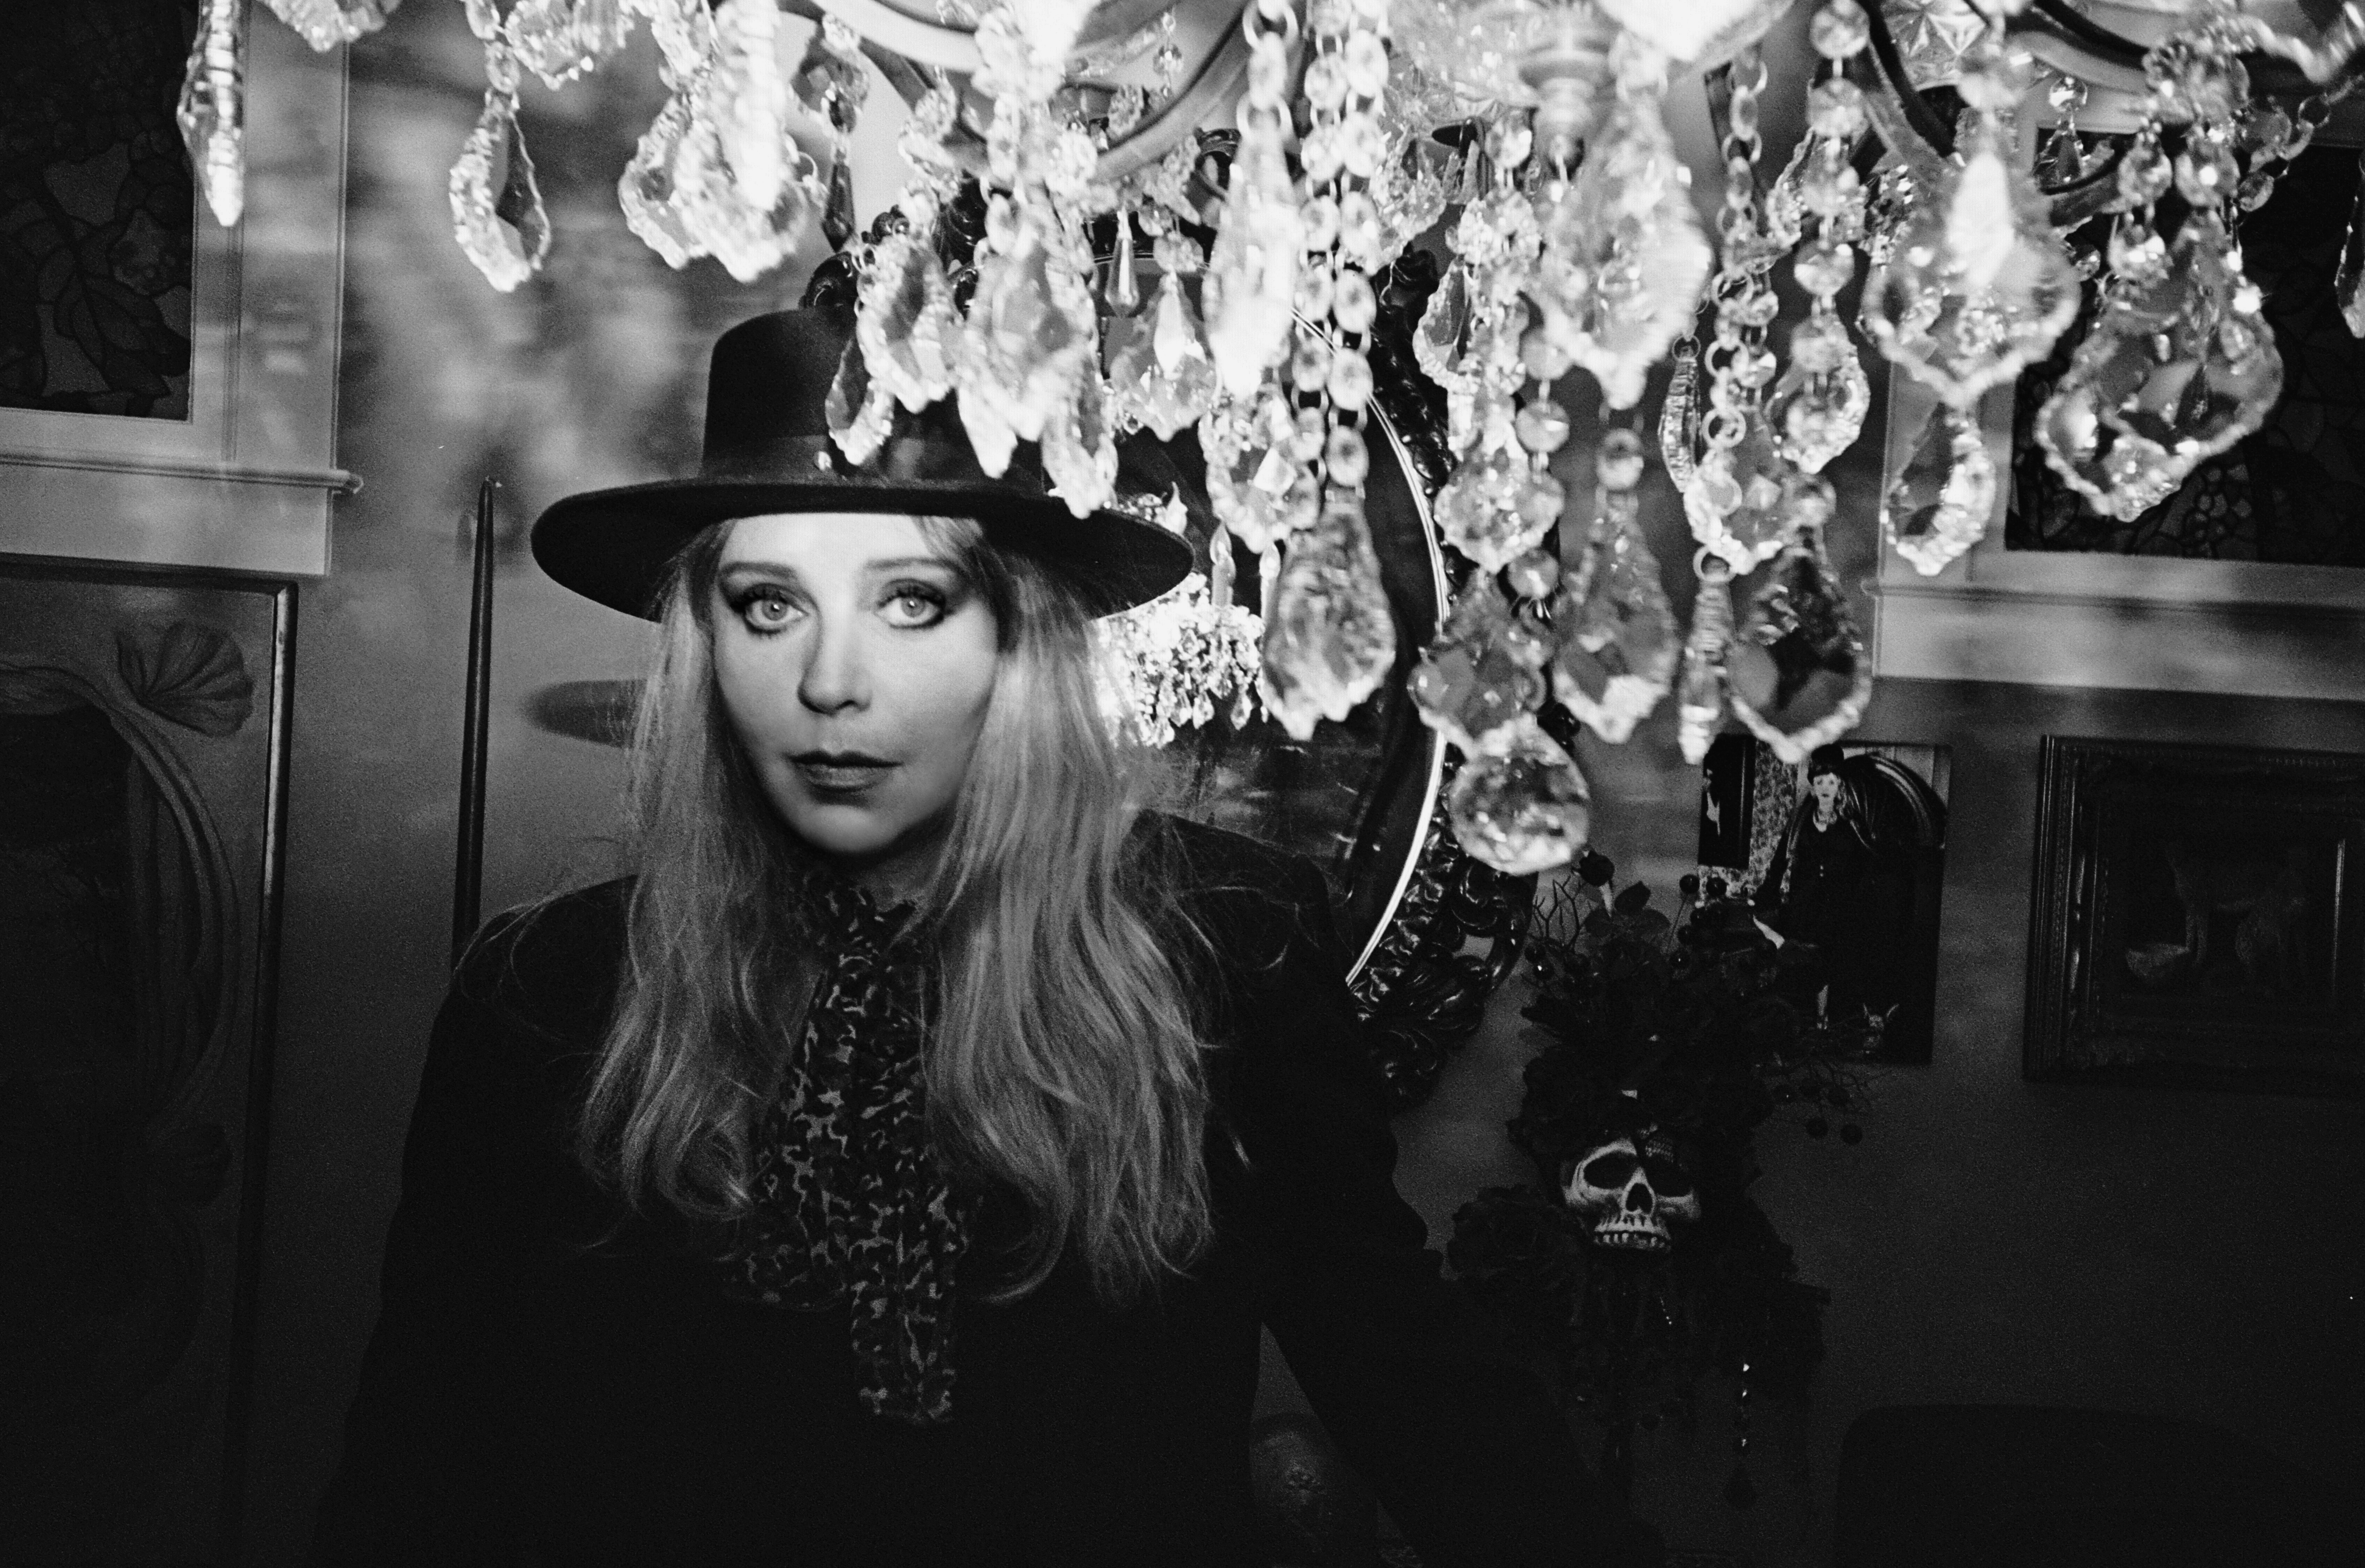 b516dad481d3 Singer-model Bebe Buell discusses her new album  Baring It All